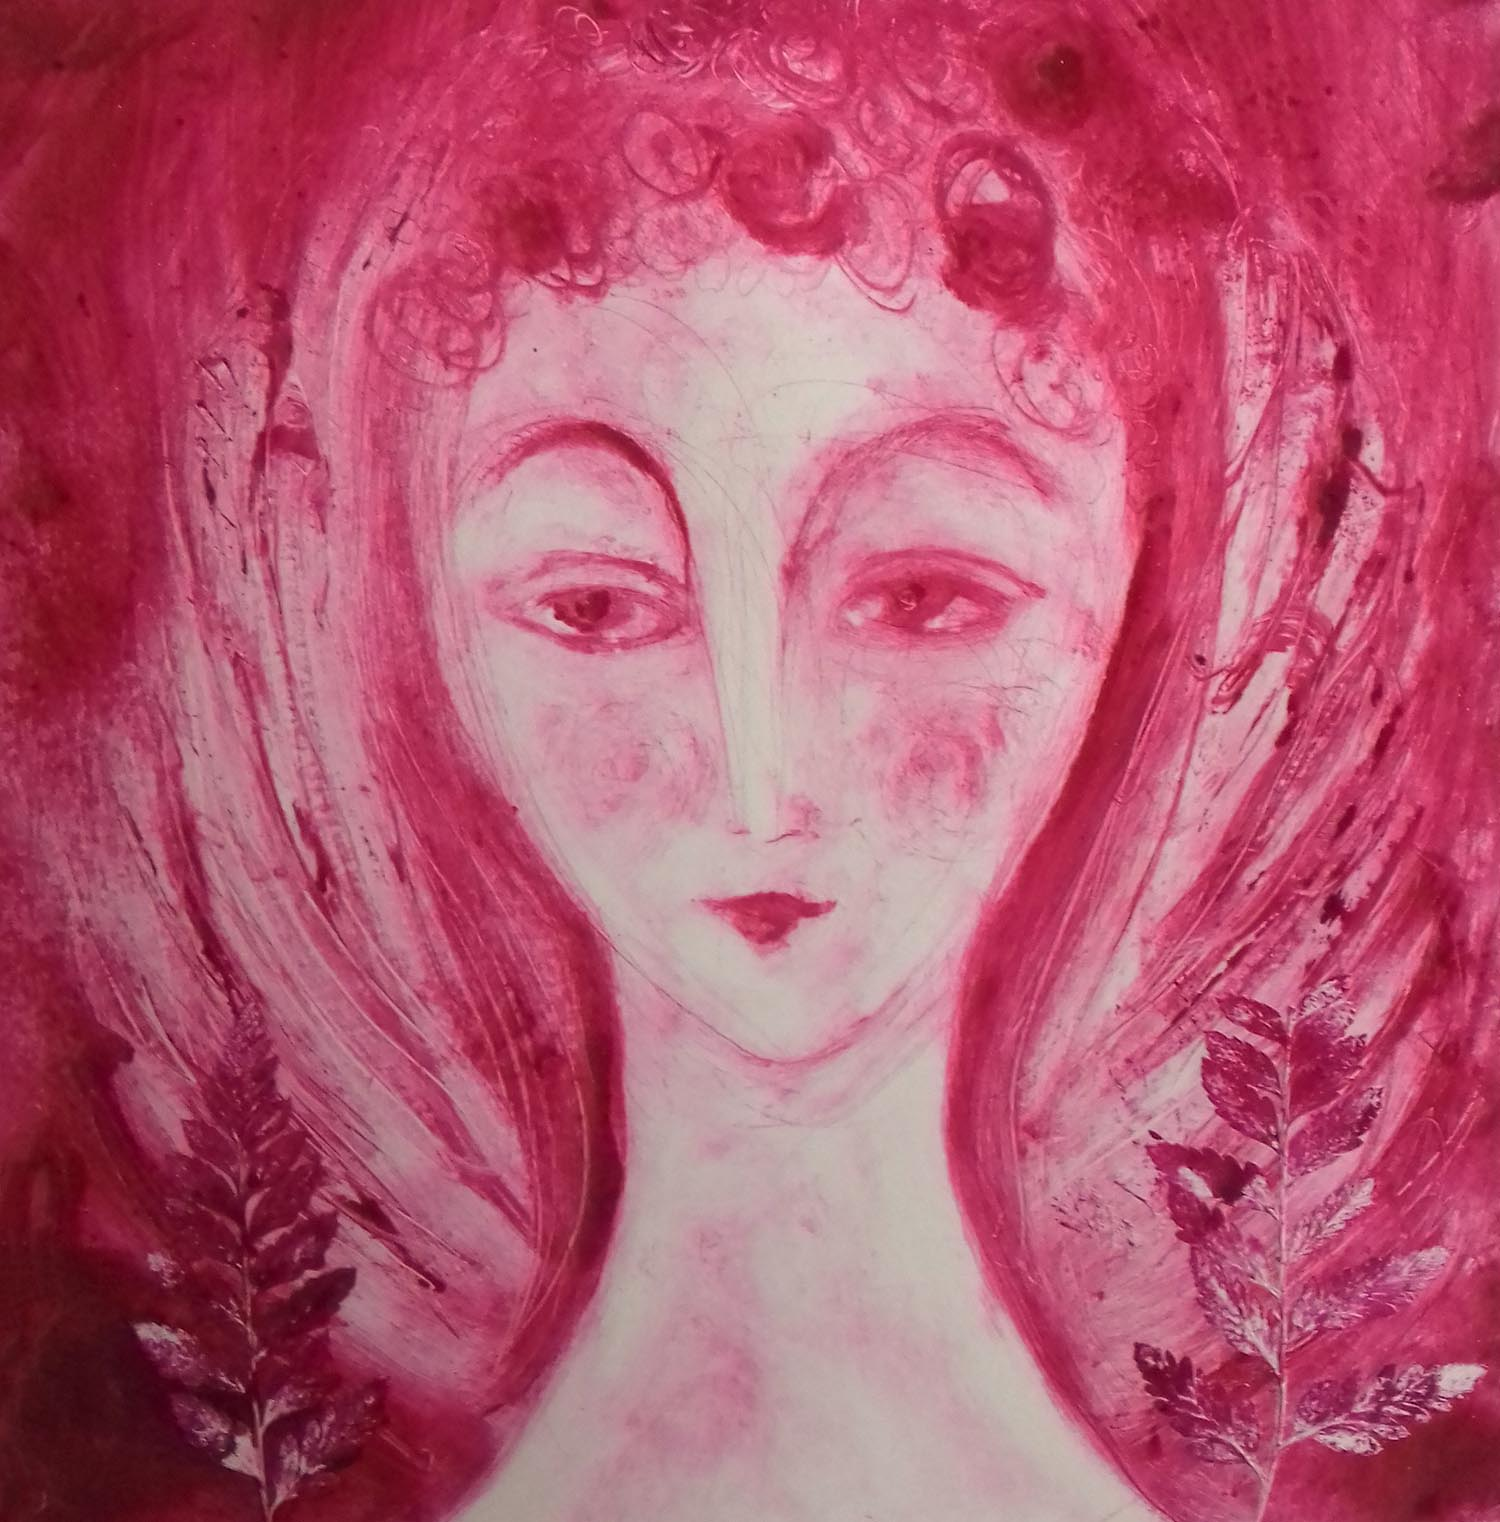 Pink Angel 2 - handcoloured drypoint image 24x26cm mounted 50x50cm £145